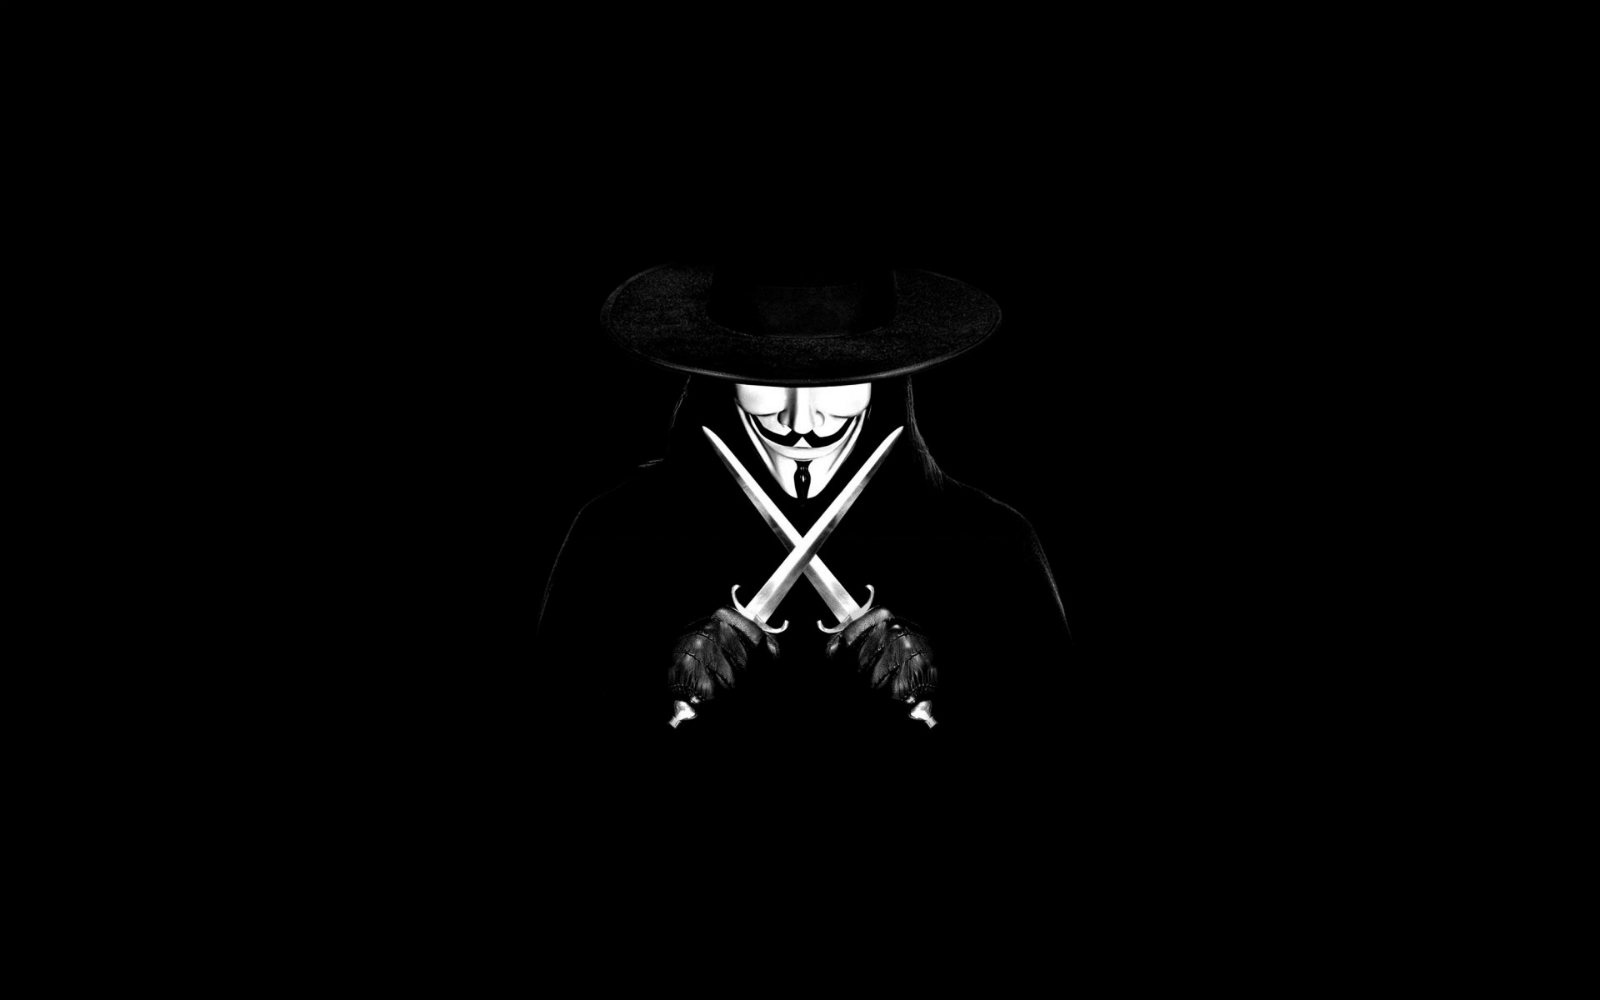 V For Vendetta Logos & Guy Fawkes Mask HD Wallpapers | Desktop Wallpapers